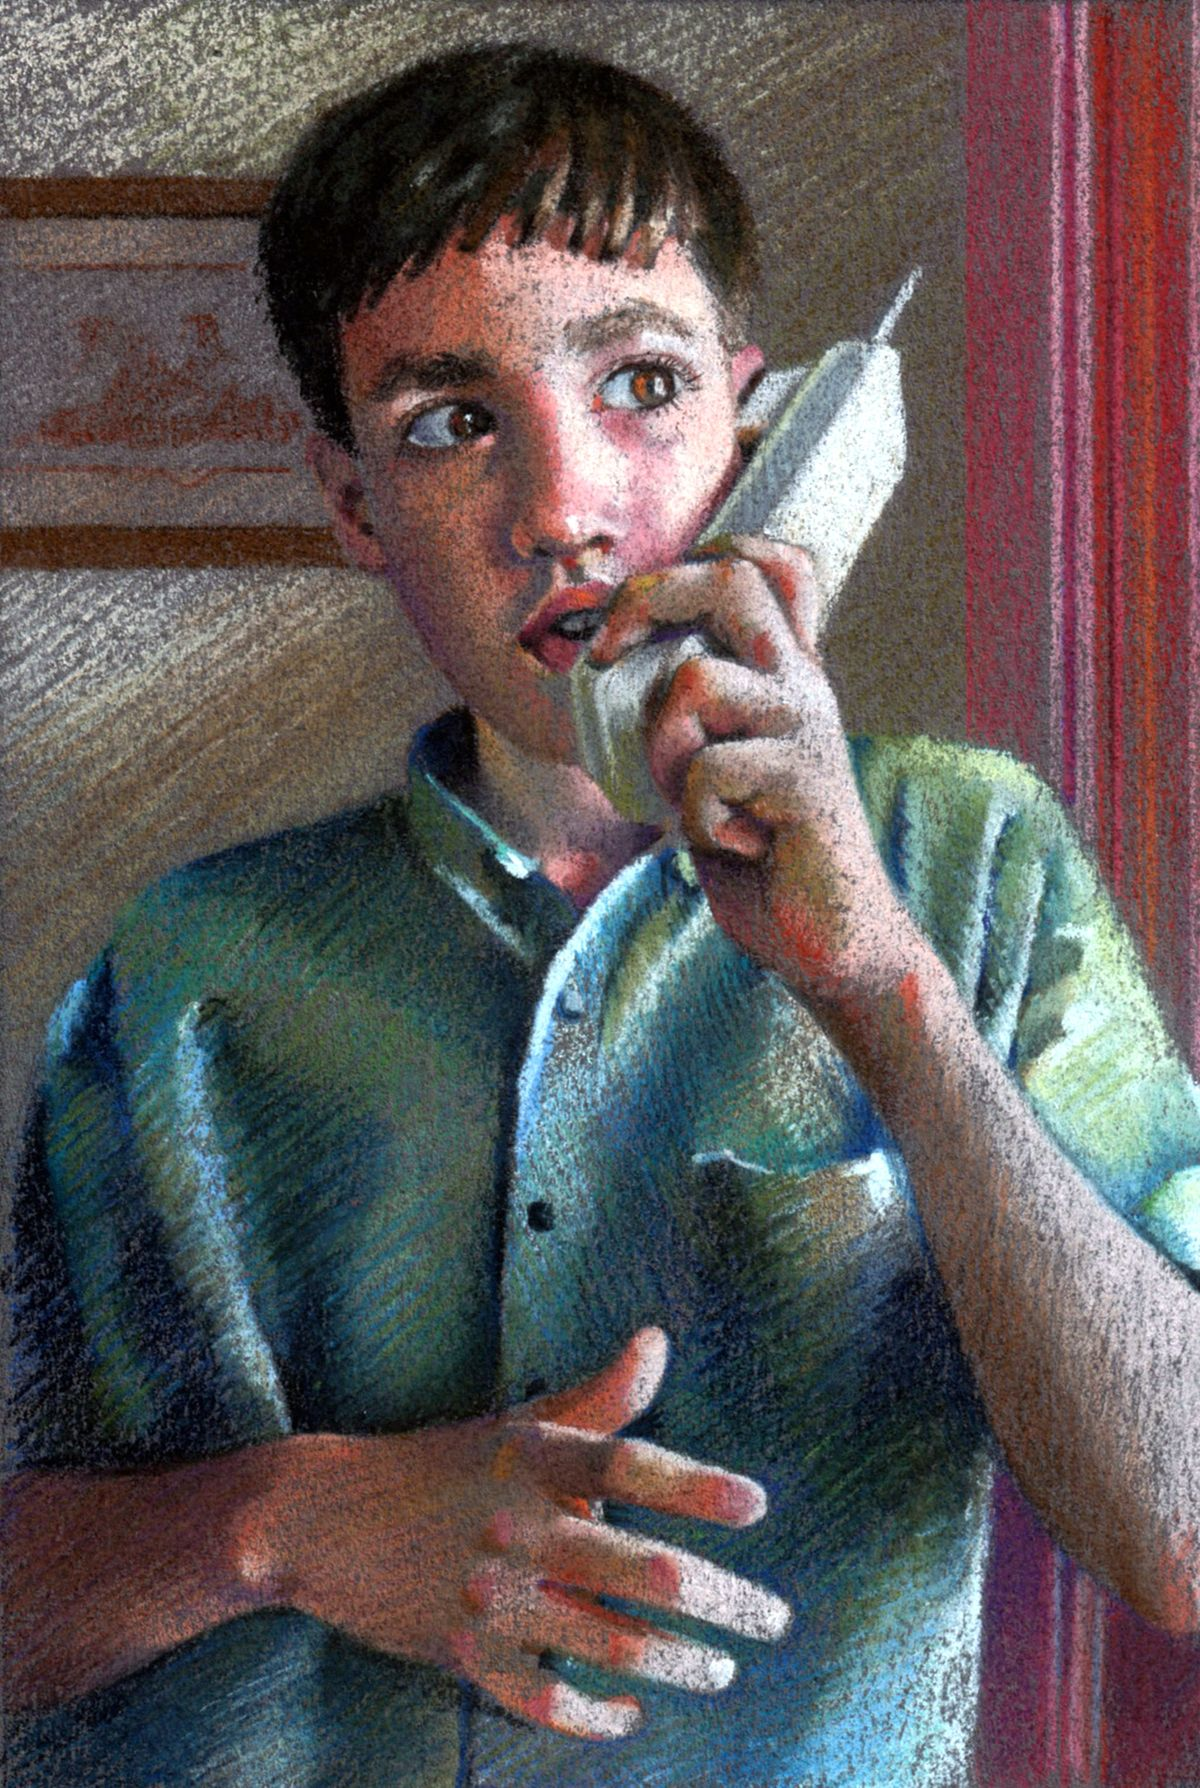 jeremy on phone workbook cropped.jpg